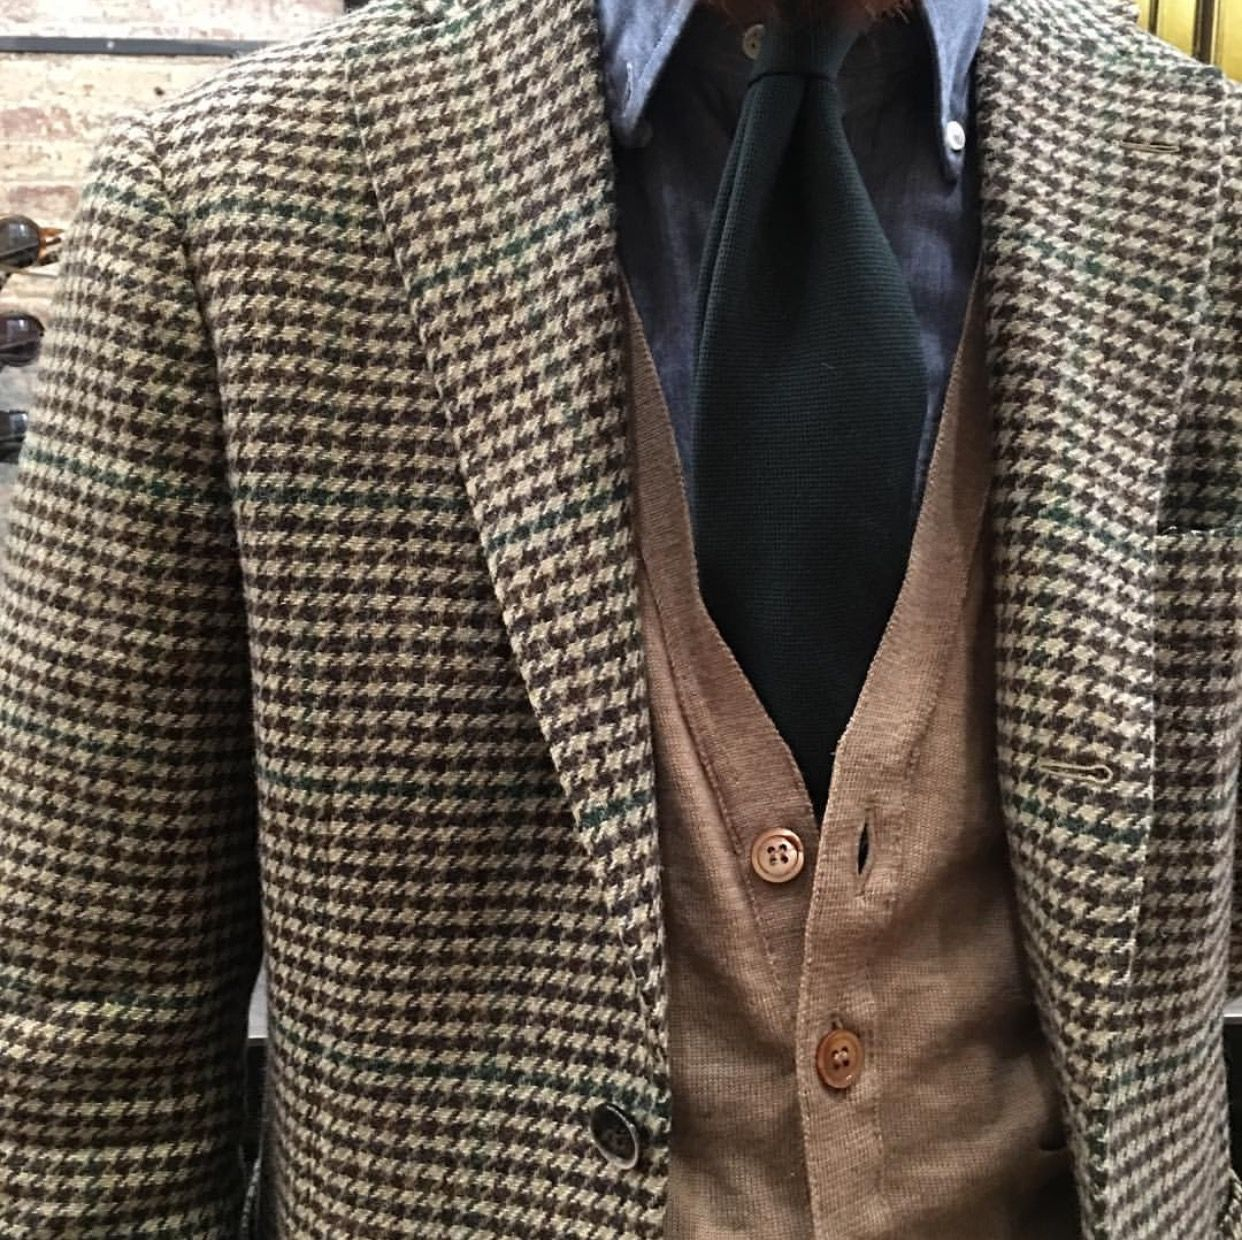 Tweed jacket #Elegance #Fashion #Menfashion #Menstyle #Luxury #Dapper #Class #Sartorial #Style #Lookcool #Trendy #Bespoke #Dandy #Classy #Awesome #Amazing #Tailoring #Stylishmen #Gentlemanstyle #Gent #Outfit #TimelessElegance #Charming #Apparel #Clothing #Elegant #Instafashion